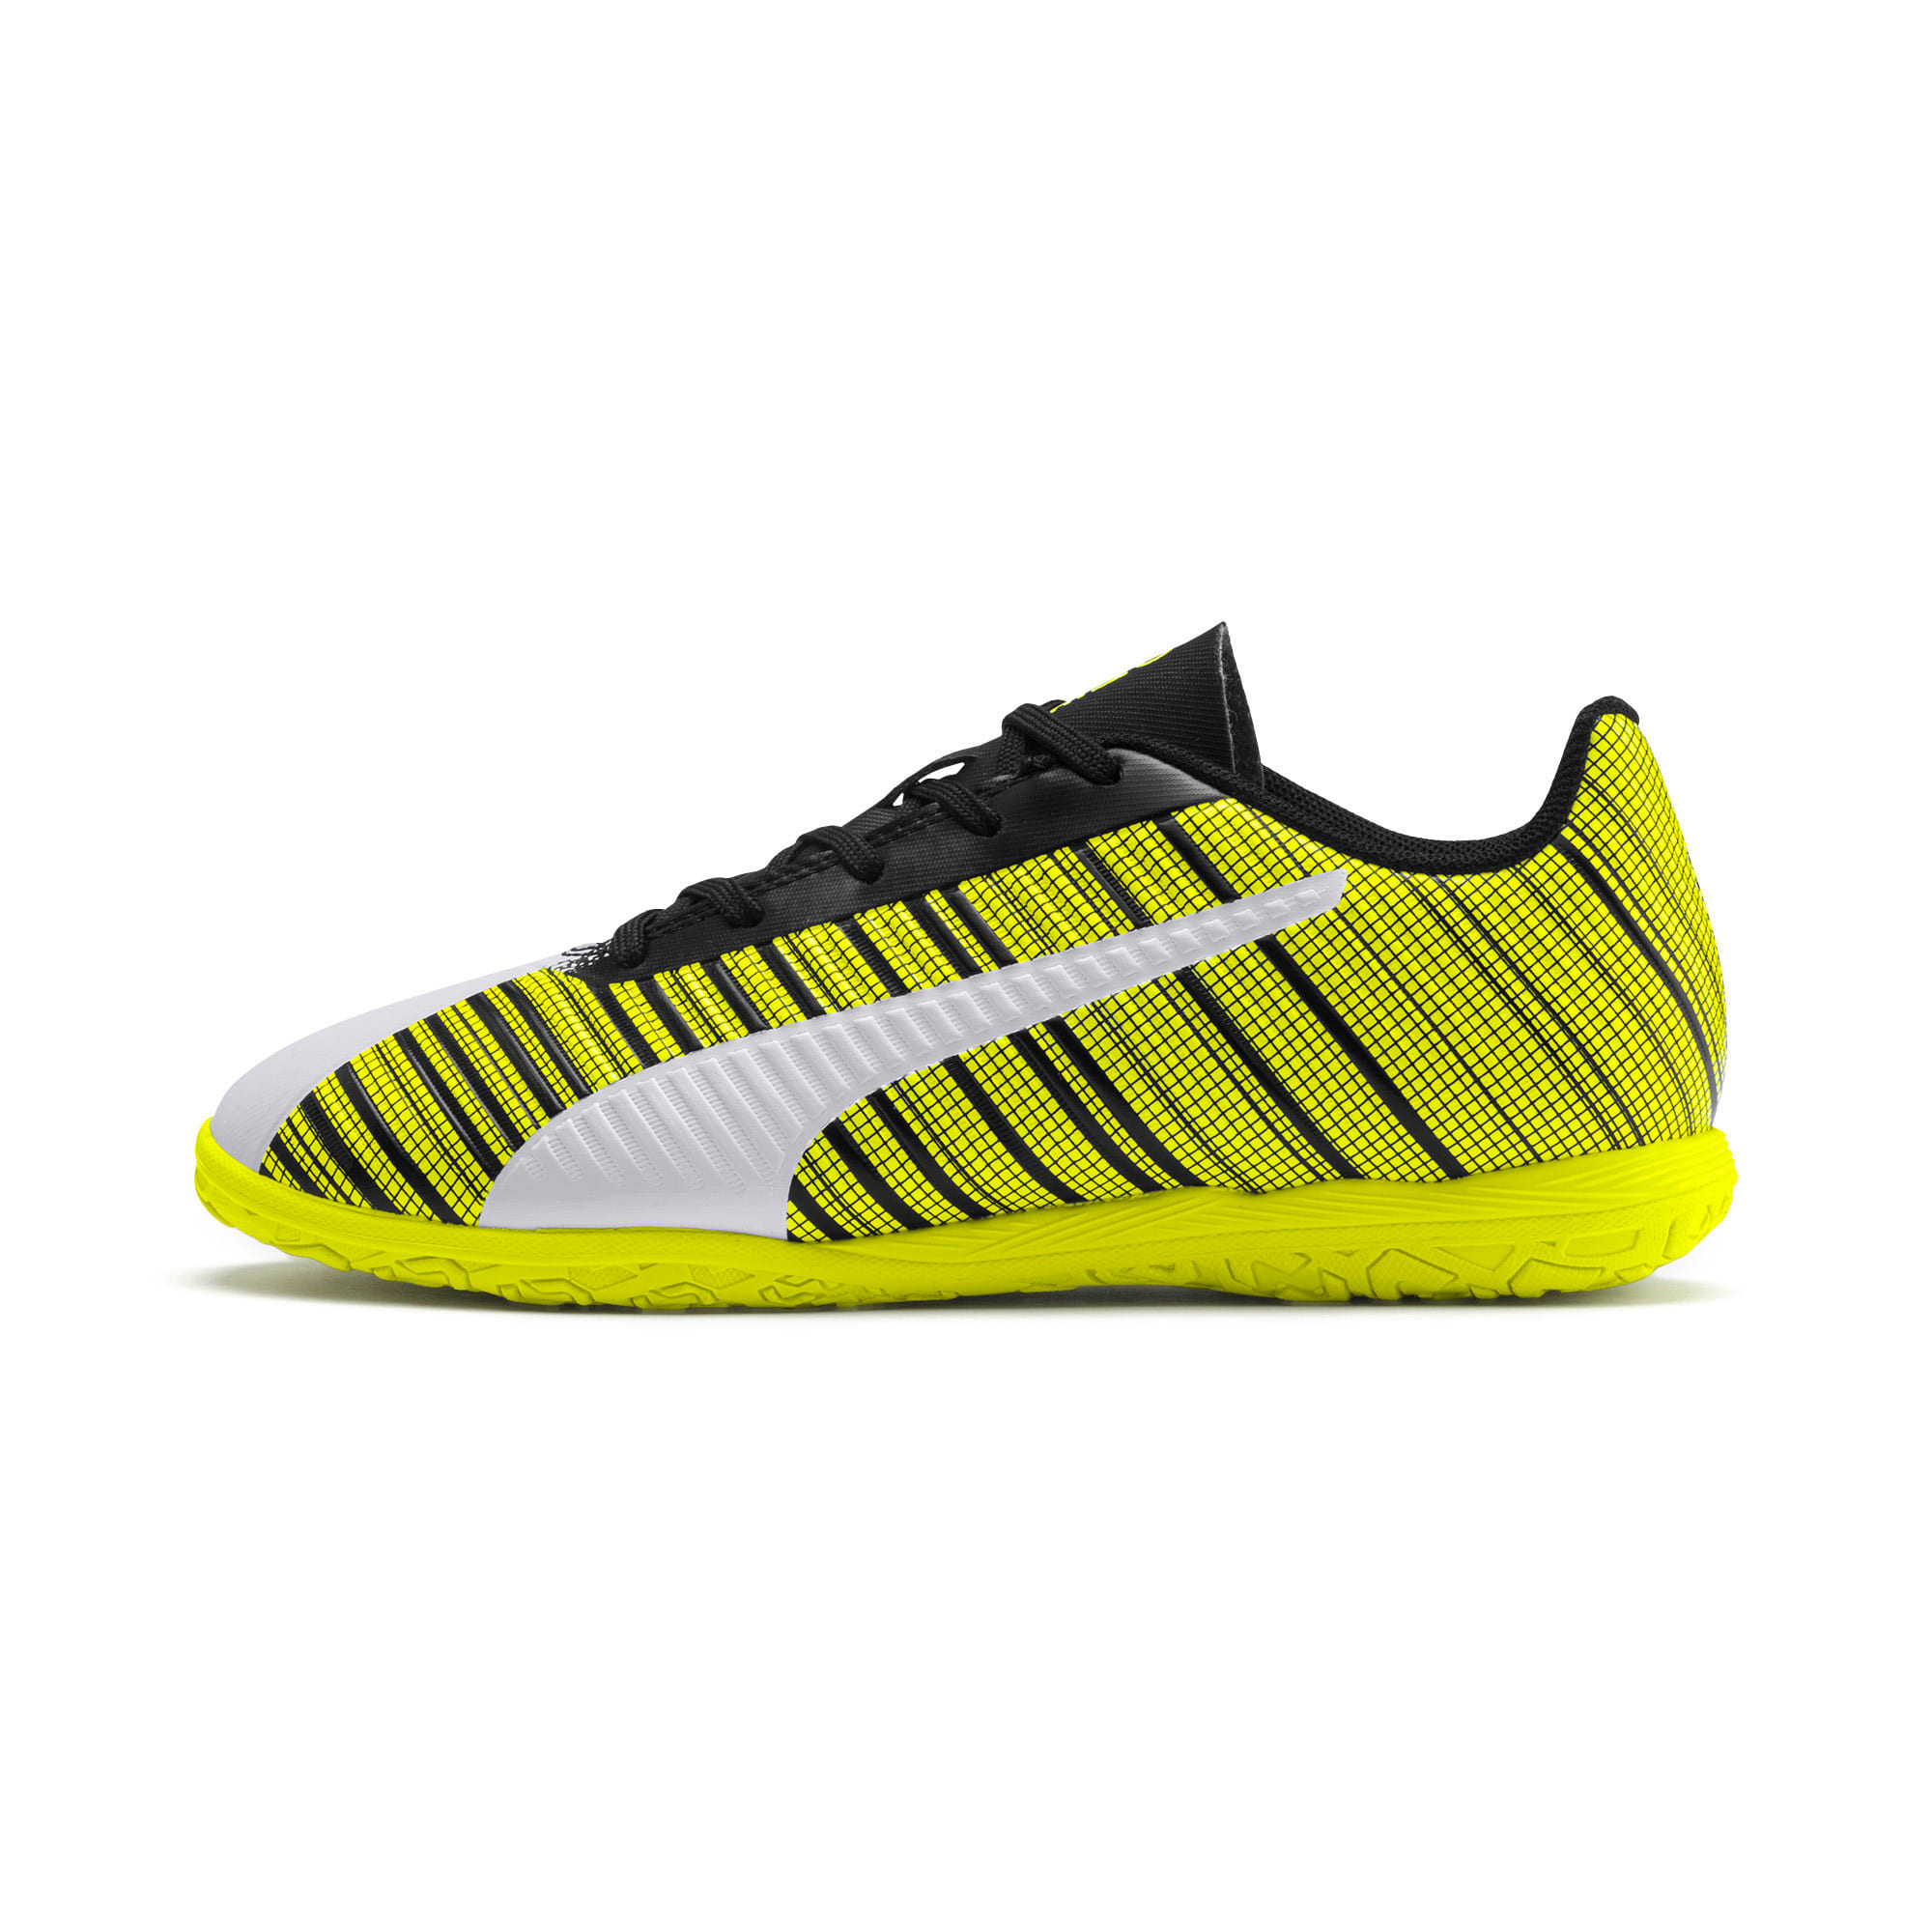 Thumbnail 1 of PUMA ONE 5.4 IT Youth Football Boots, White-Black-Yellow Alert, medium